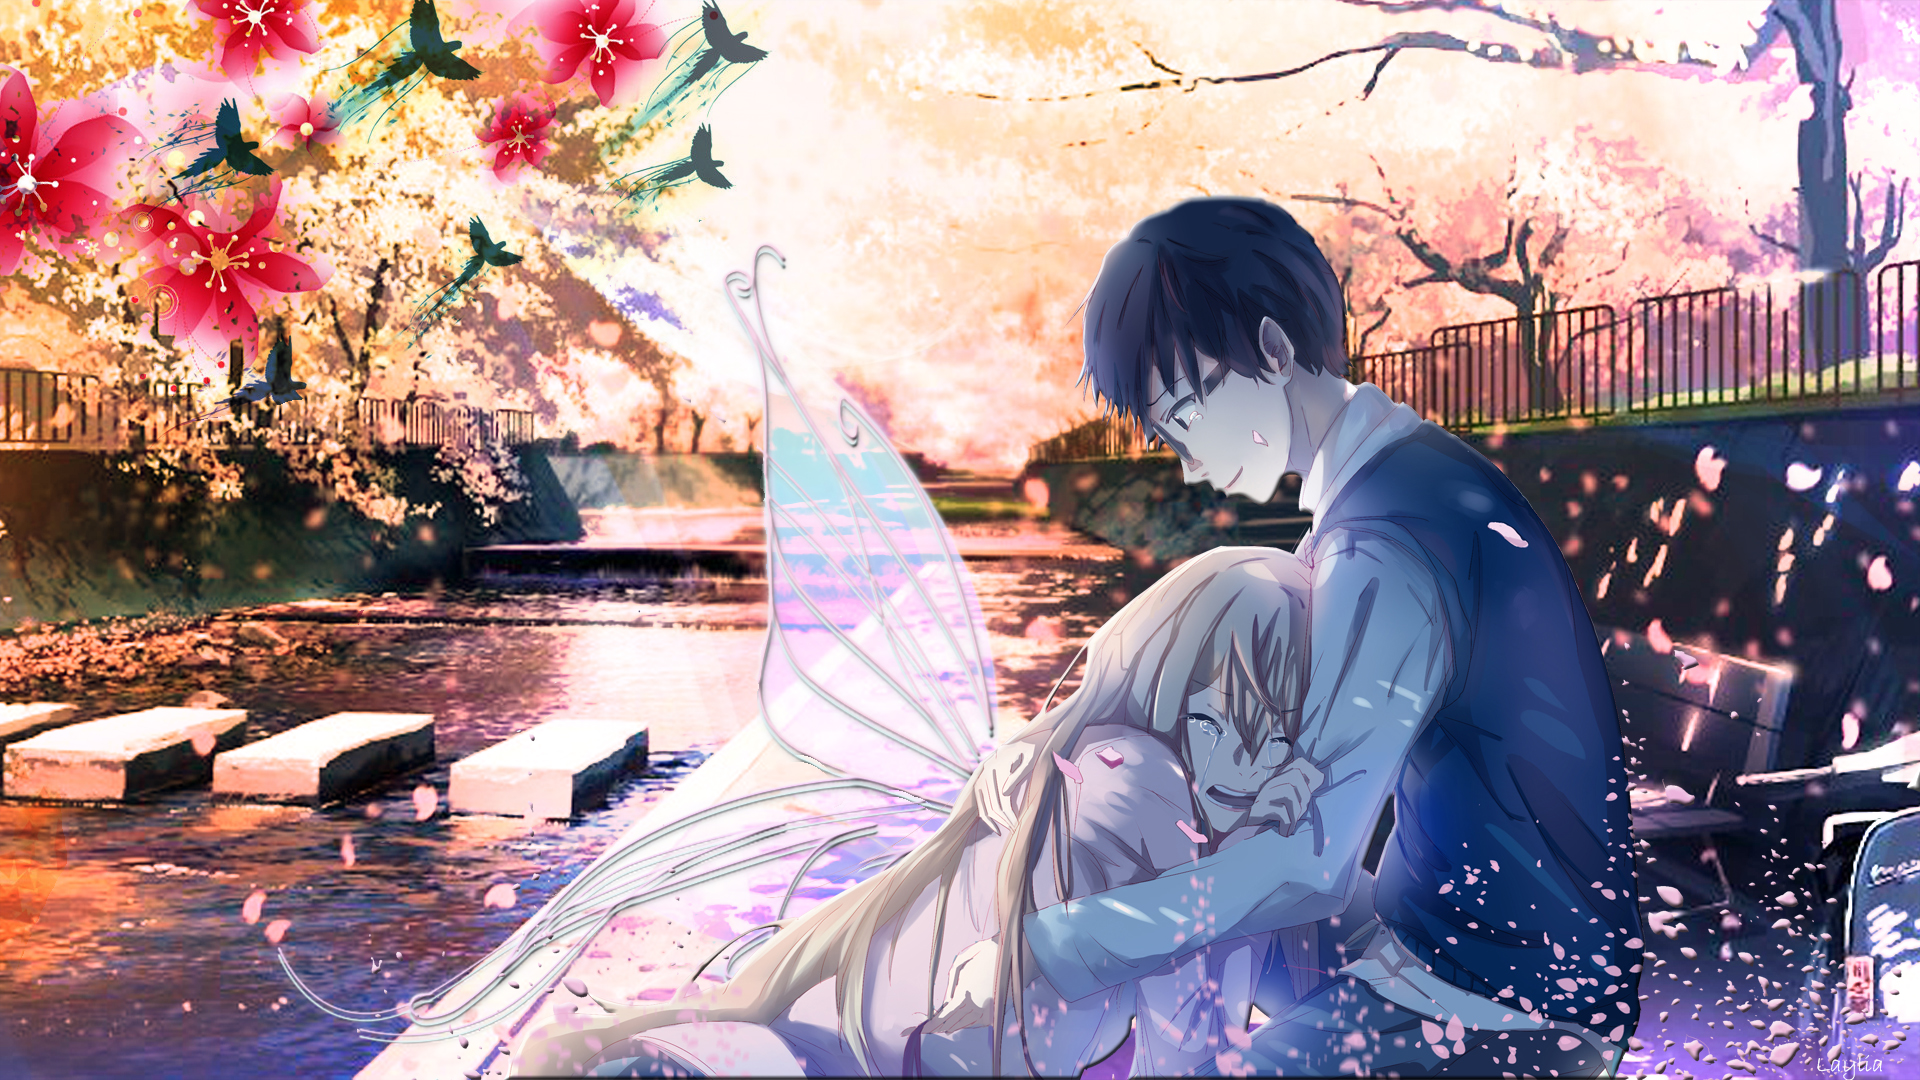 Your Lie In April Download Wallpaper Anime Your Lie In April Background 1920x1080 Wallpaper Teahub Io